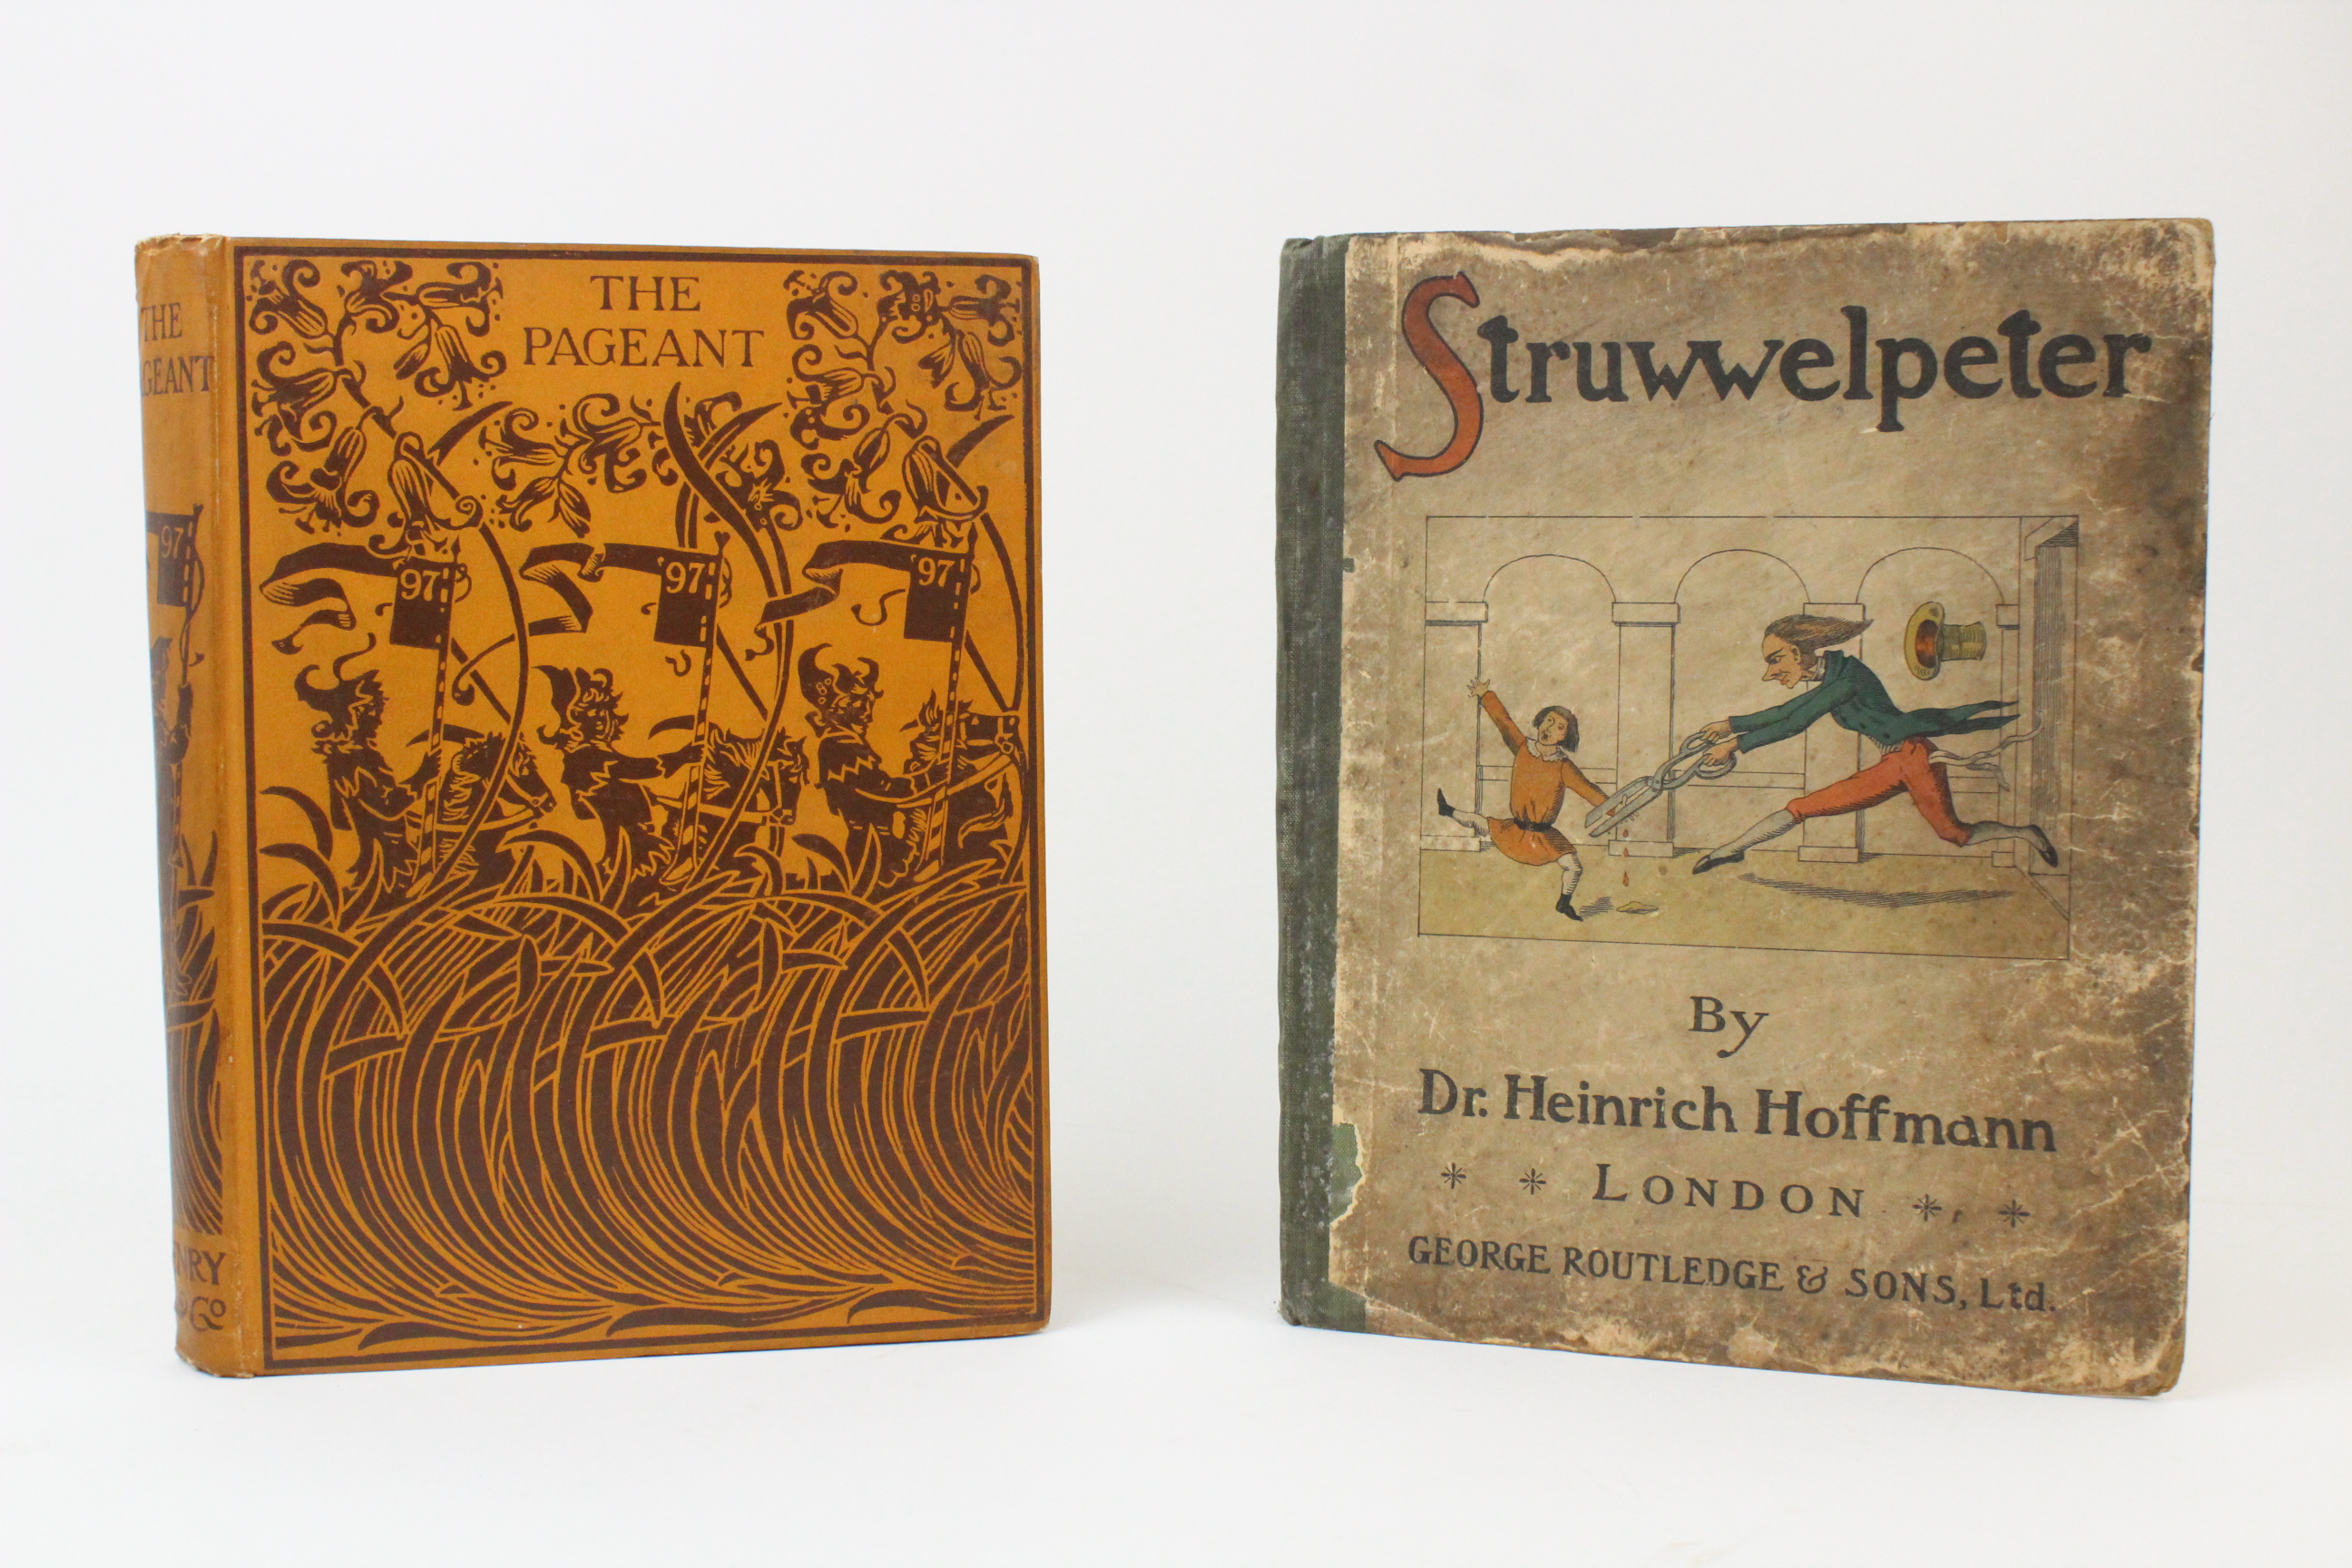 Hazelwood (C) et al, THE PAGEANT, 1897 edition, illustrated red boards, illustrated endpapers,